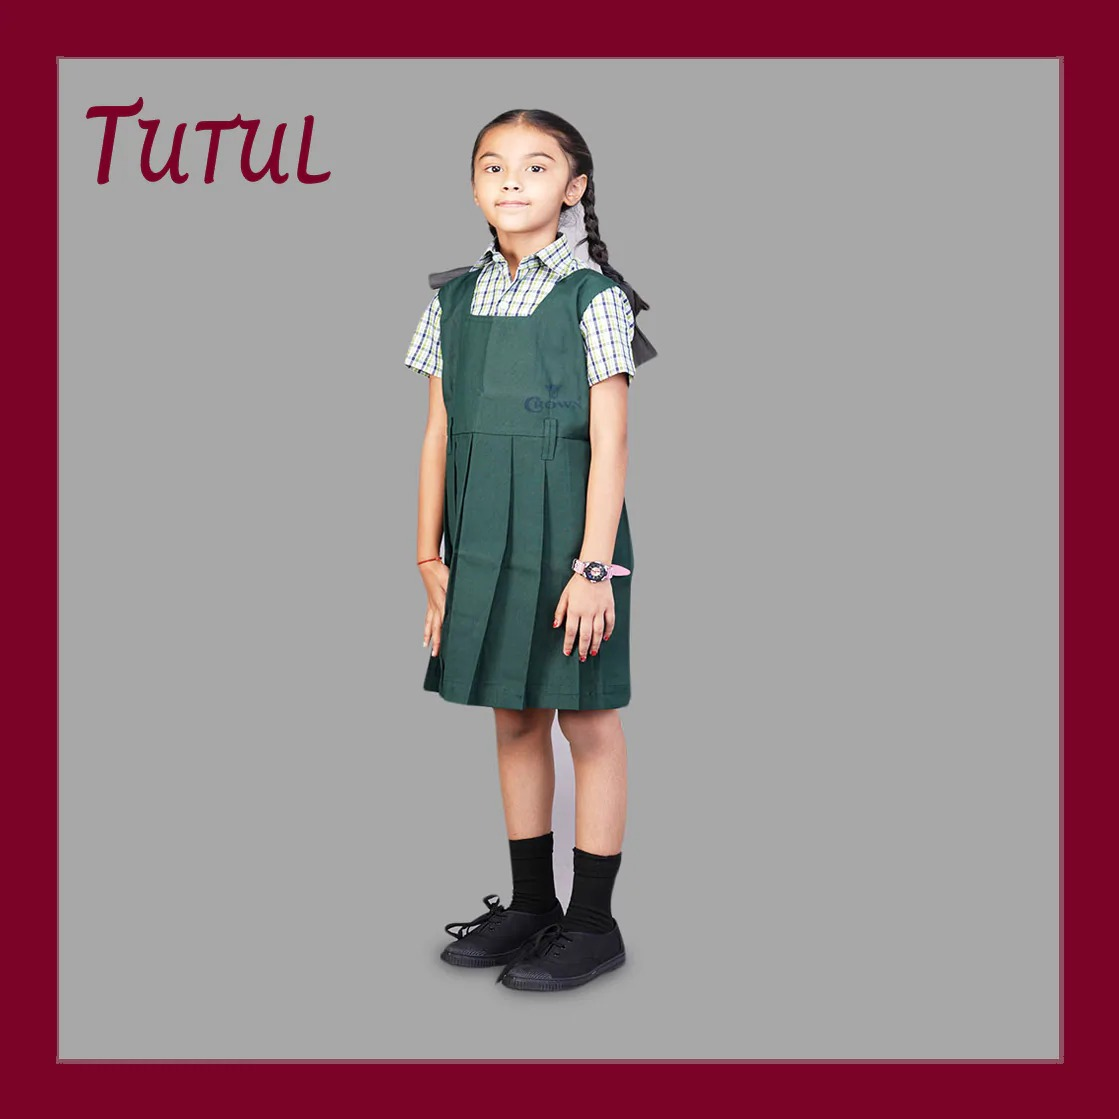 Tutul TN Govt 1 - 5th Std Bottle Green Colour Pinafore (9-10 Years)